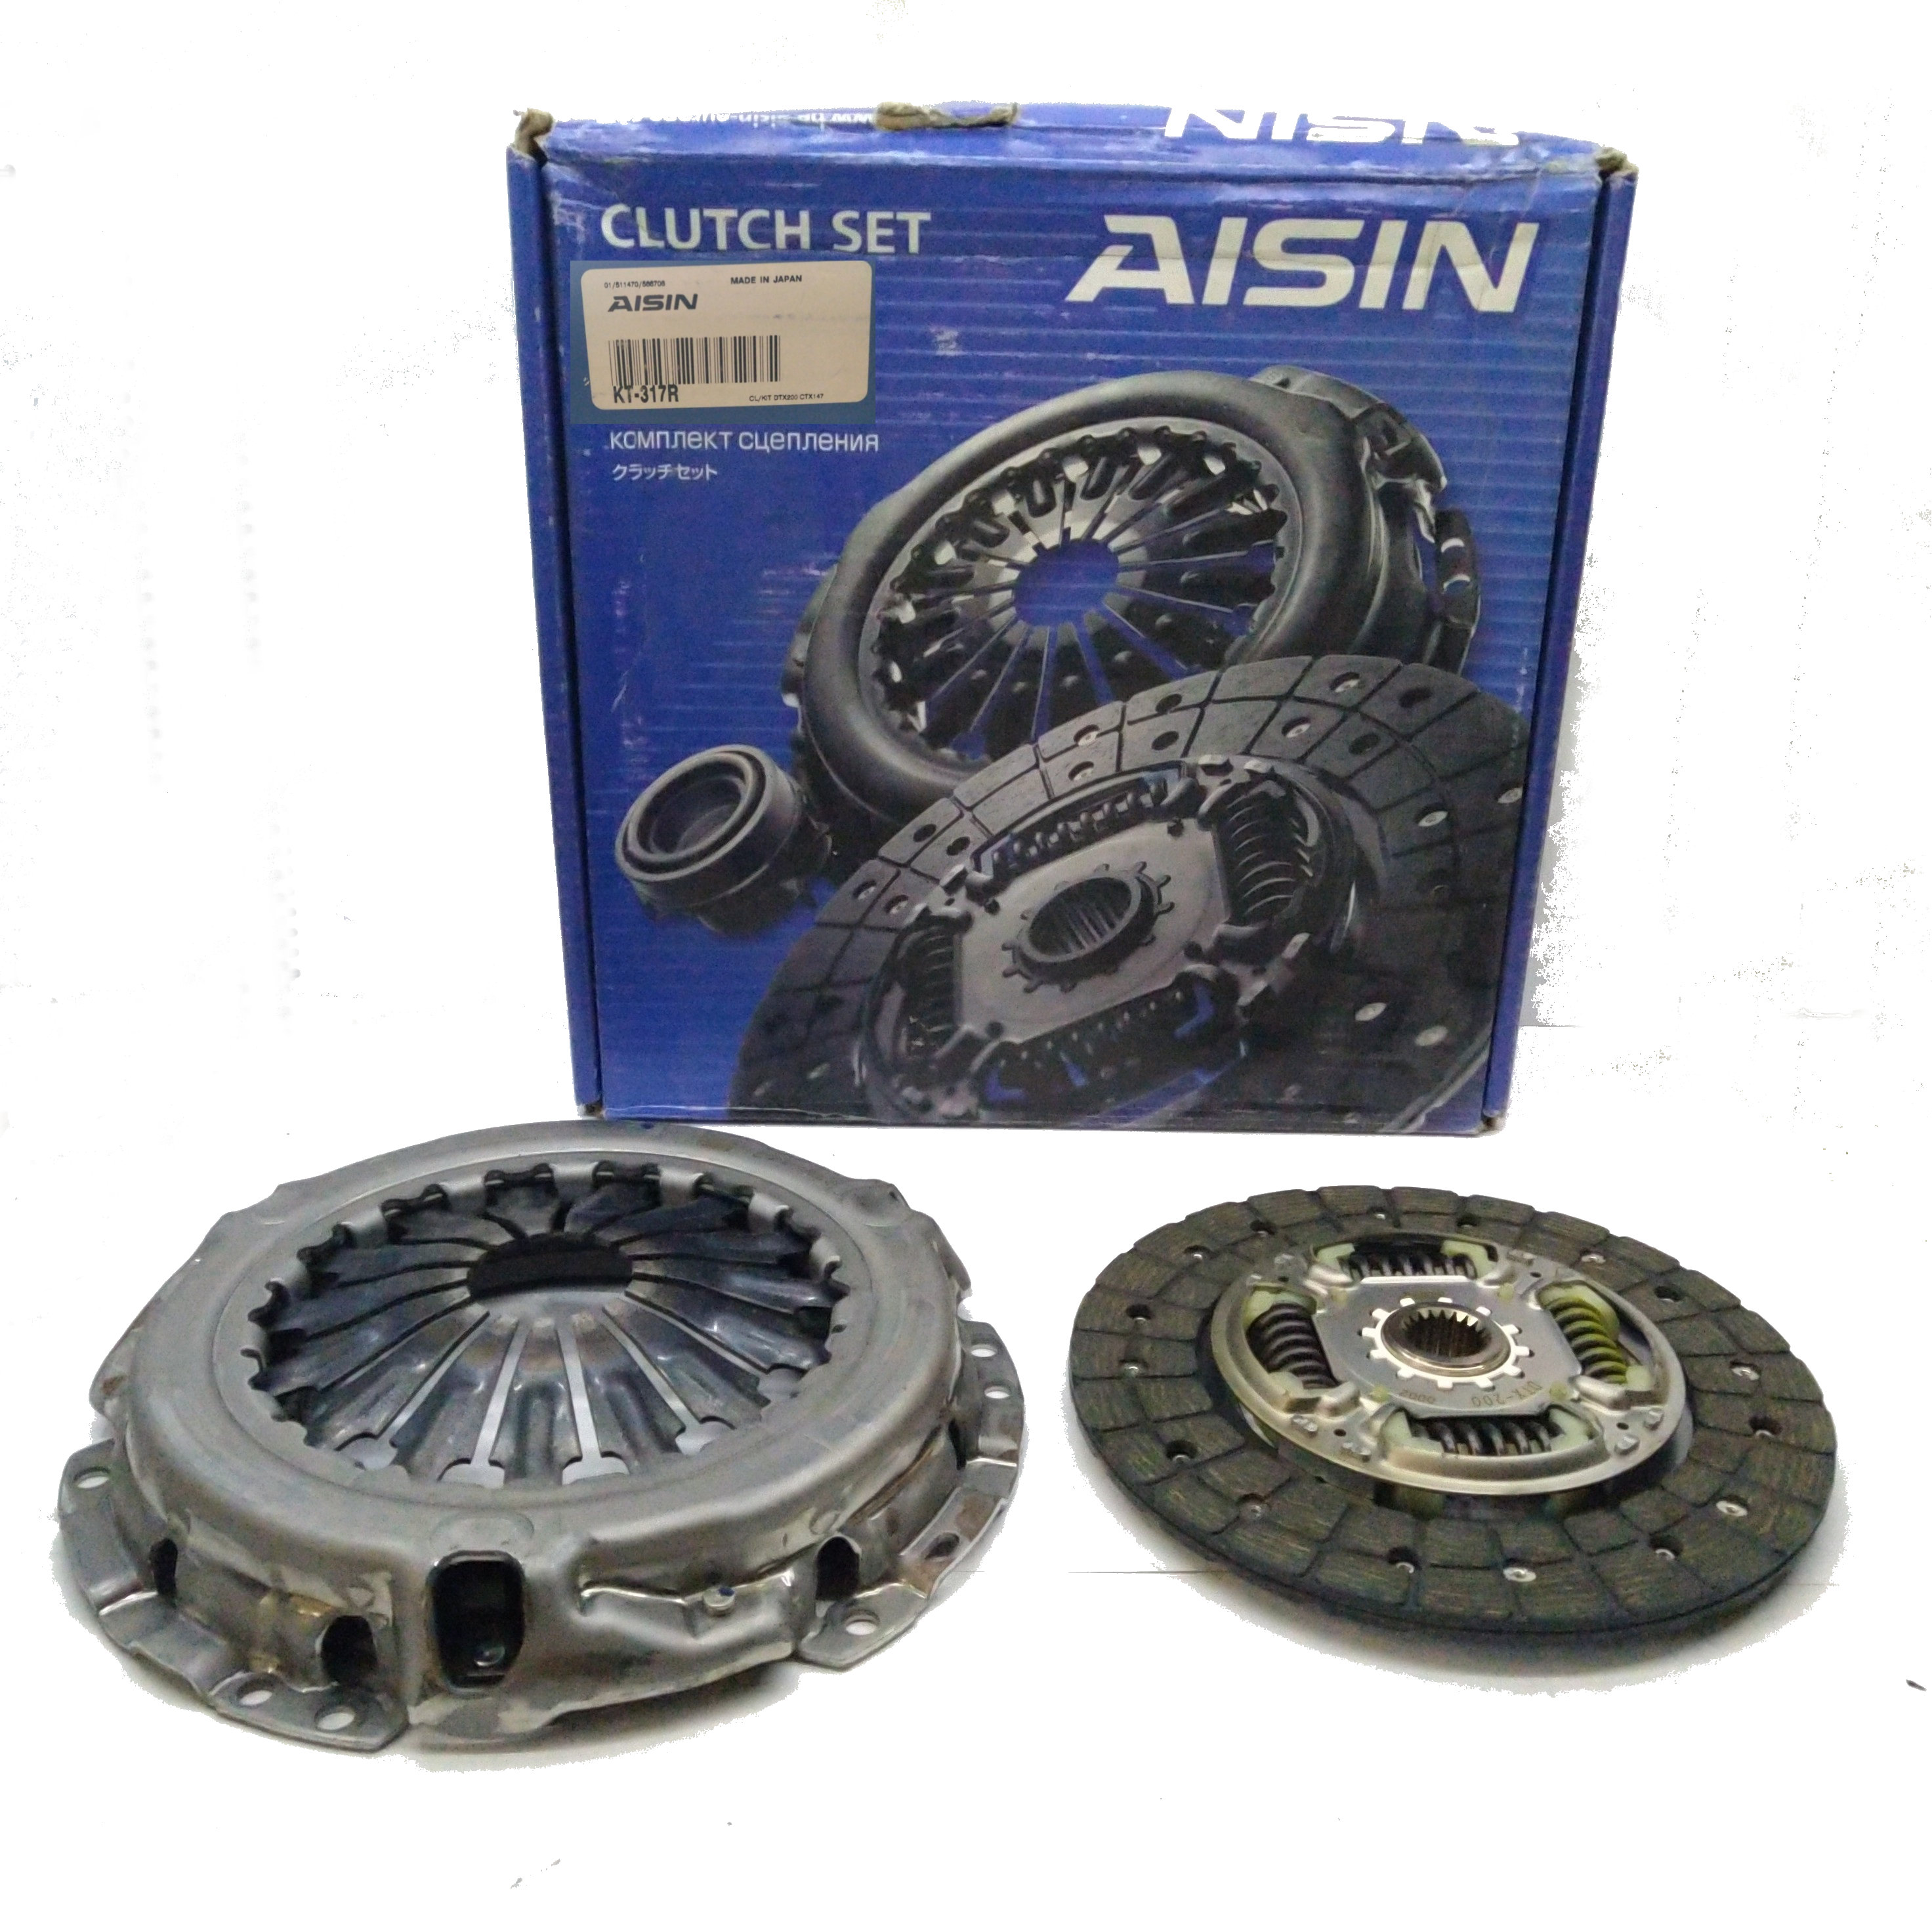 COMPLETE CLUTCH KIT TOYOTA IQ 1.4D AISIN FOR 3121074020